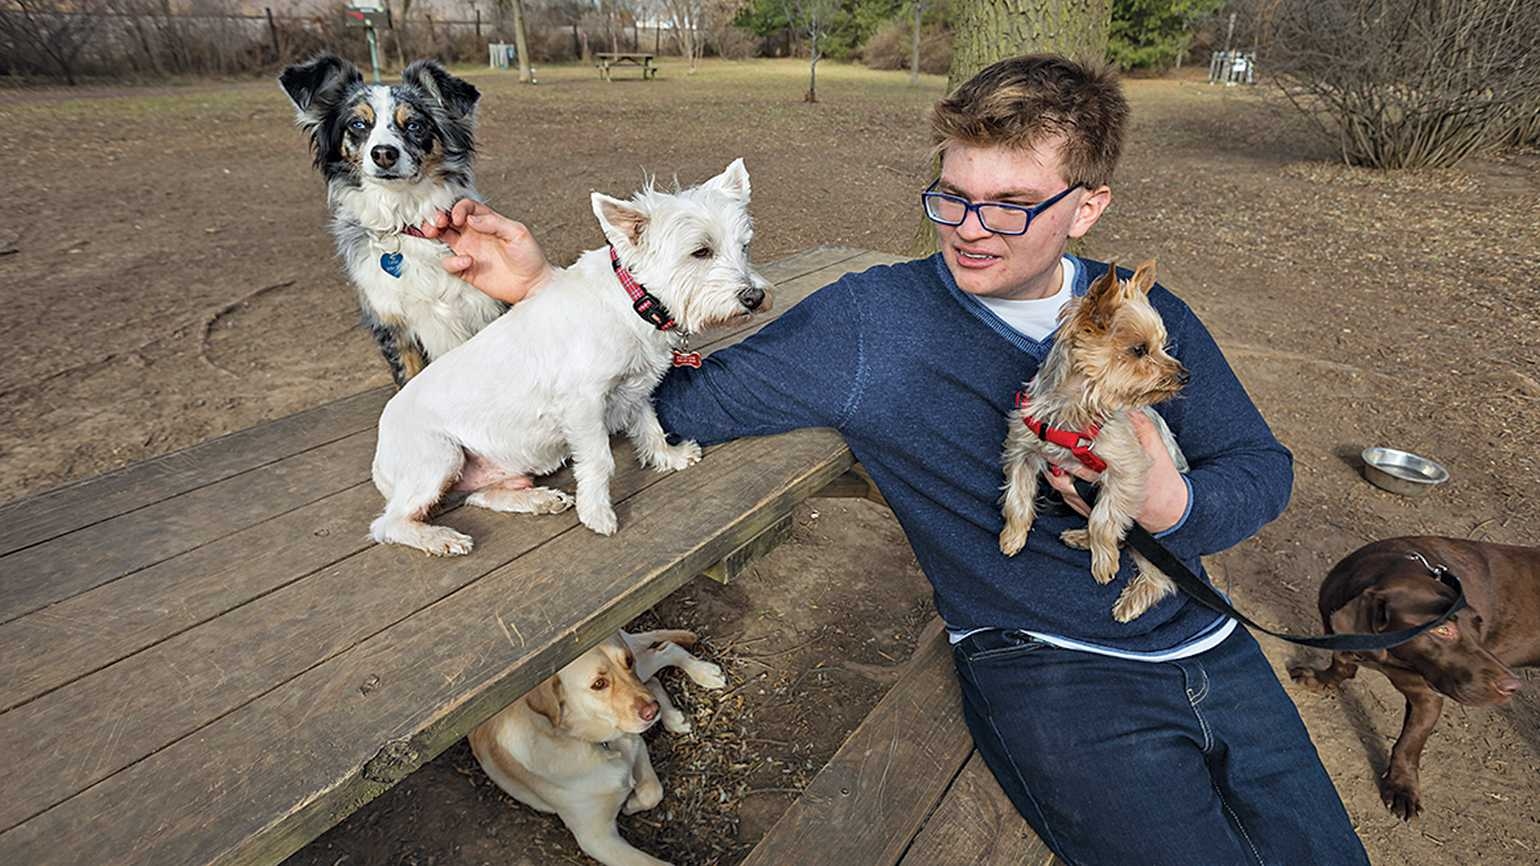 'Caring for dogs has given Caleb a real purpose in life,' his mom says